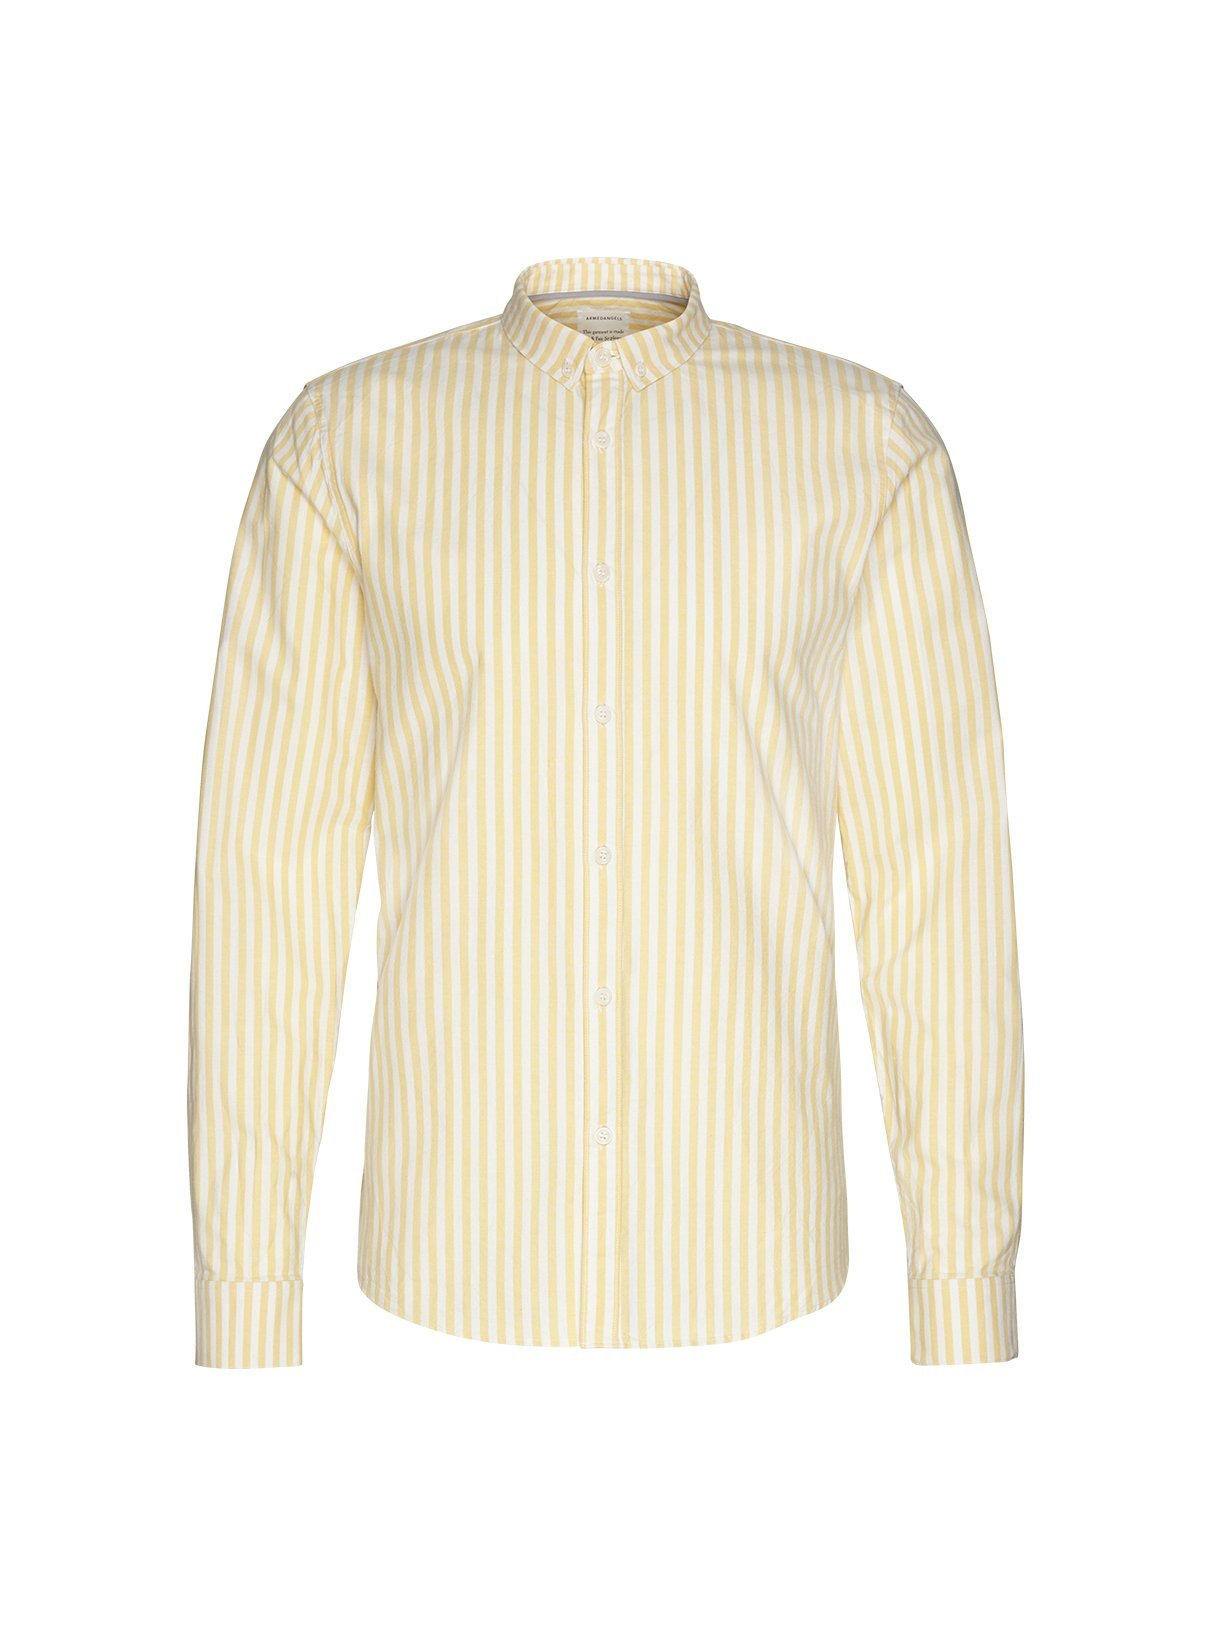 Tymaan - shirt - lemon yellow